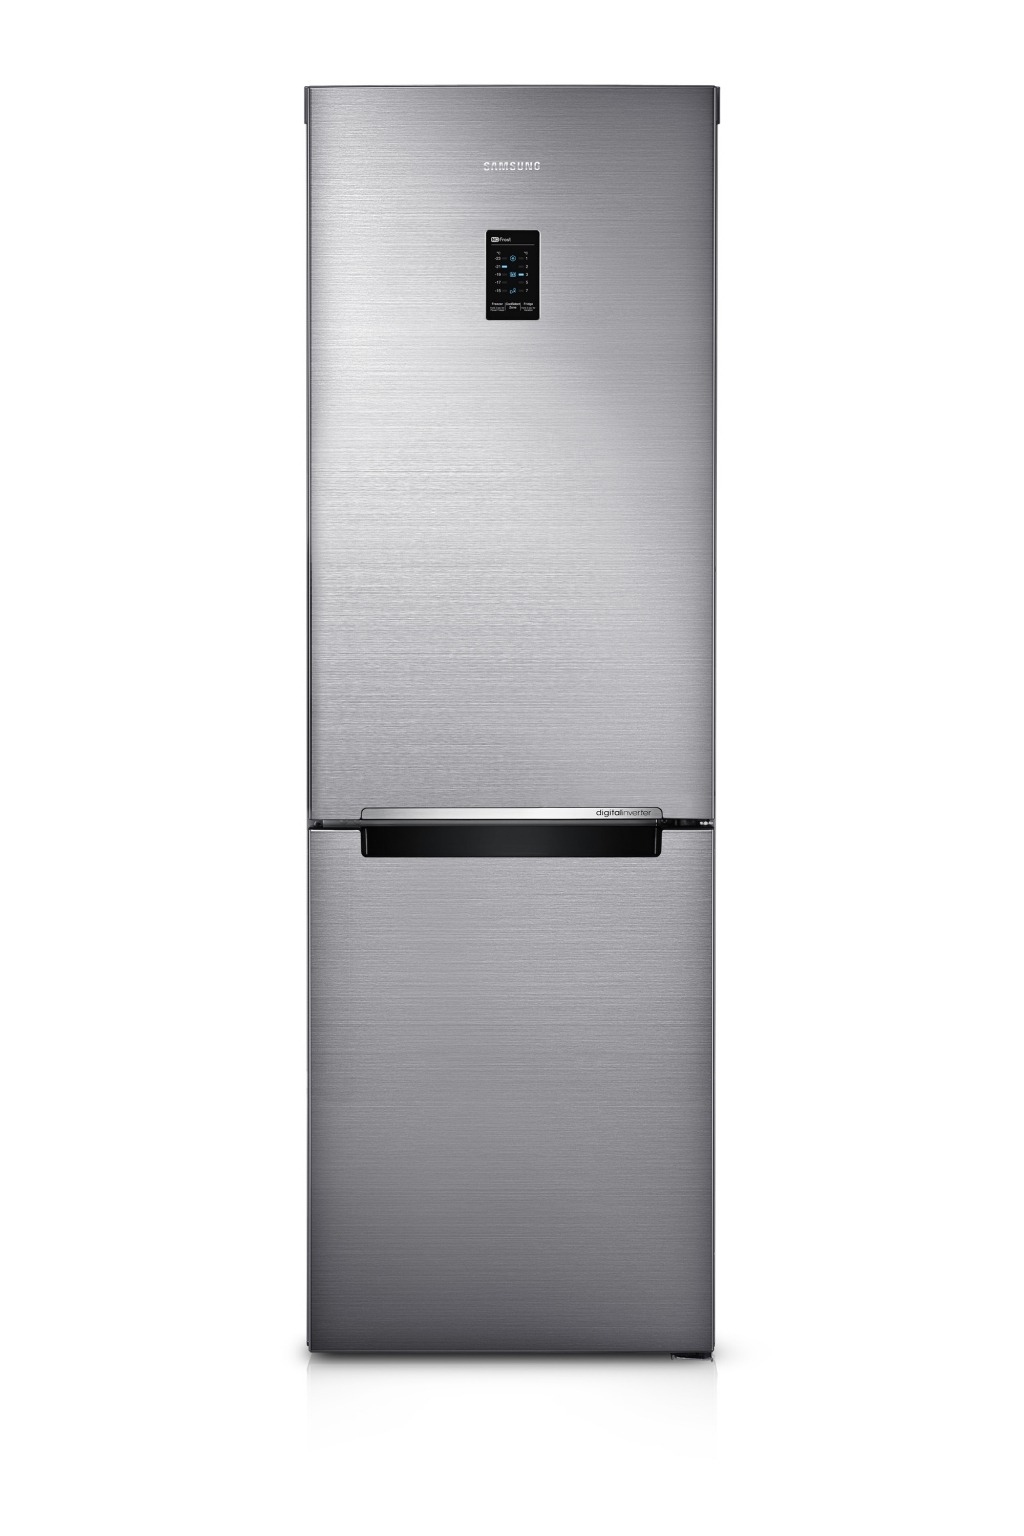 Samsung Refrigerators Won Five Crowns from European Consumer Magazines